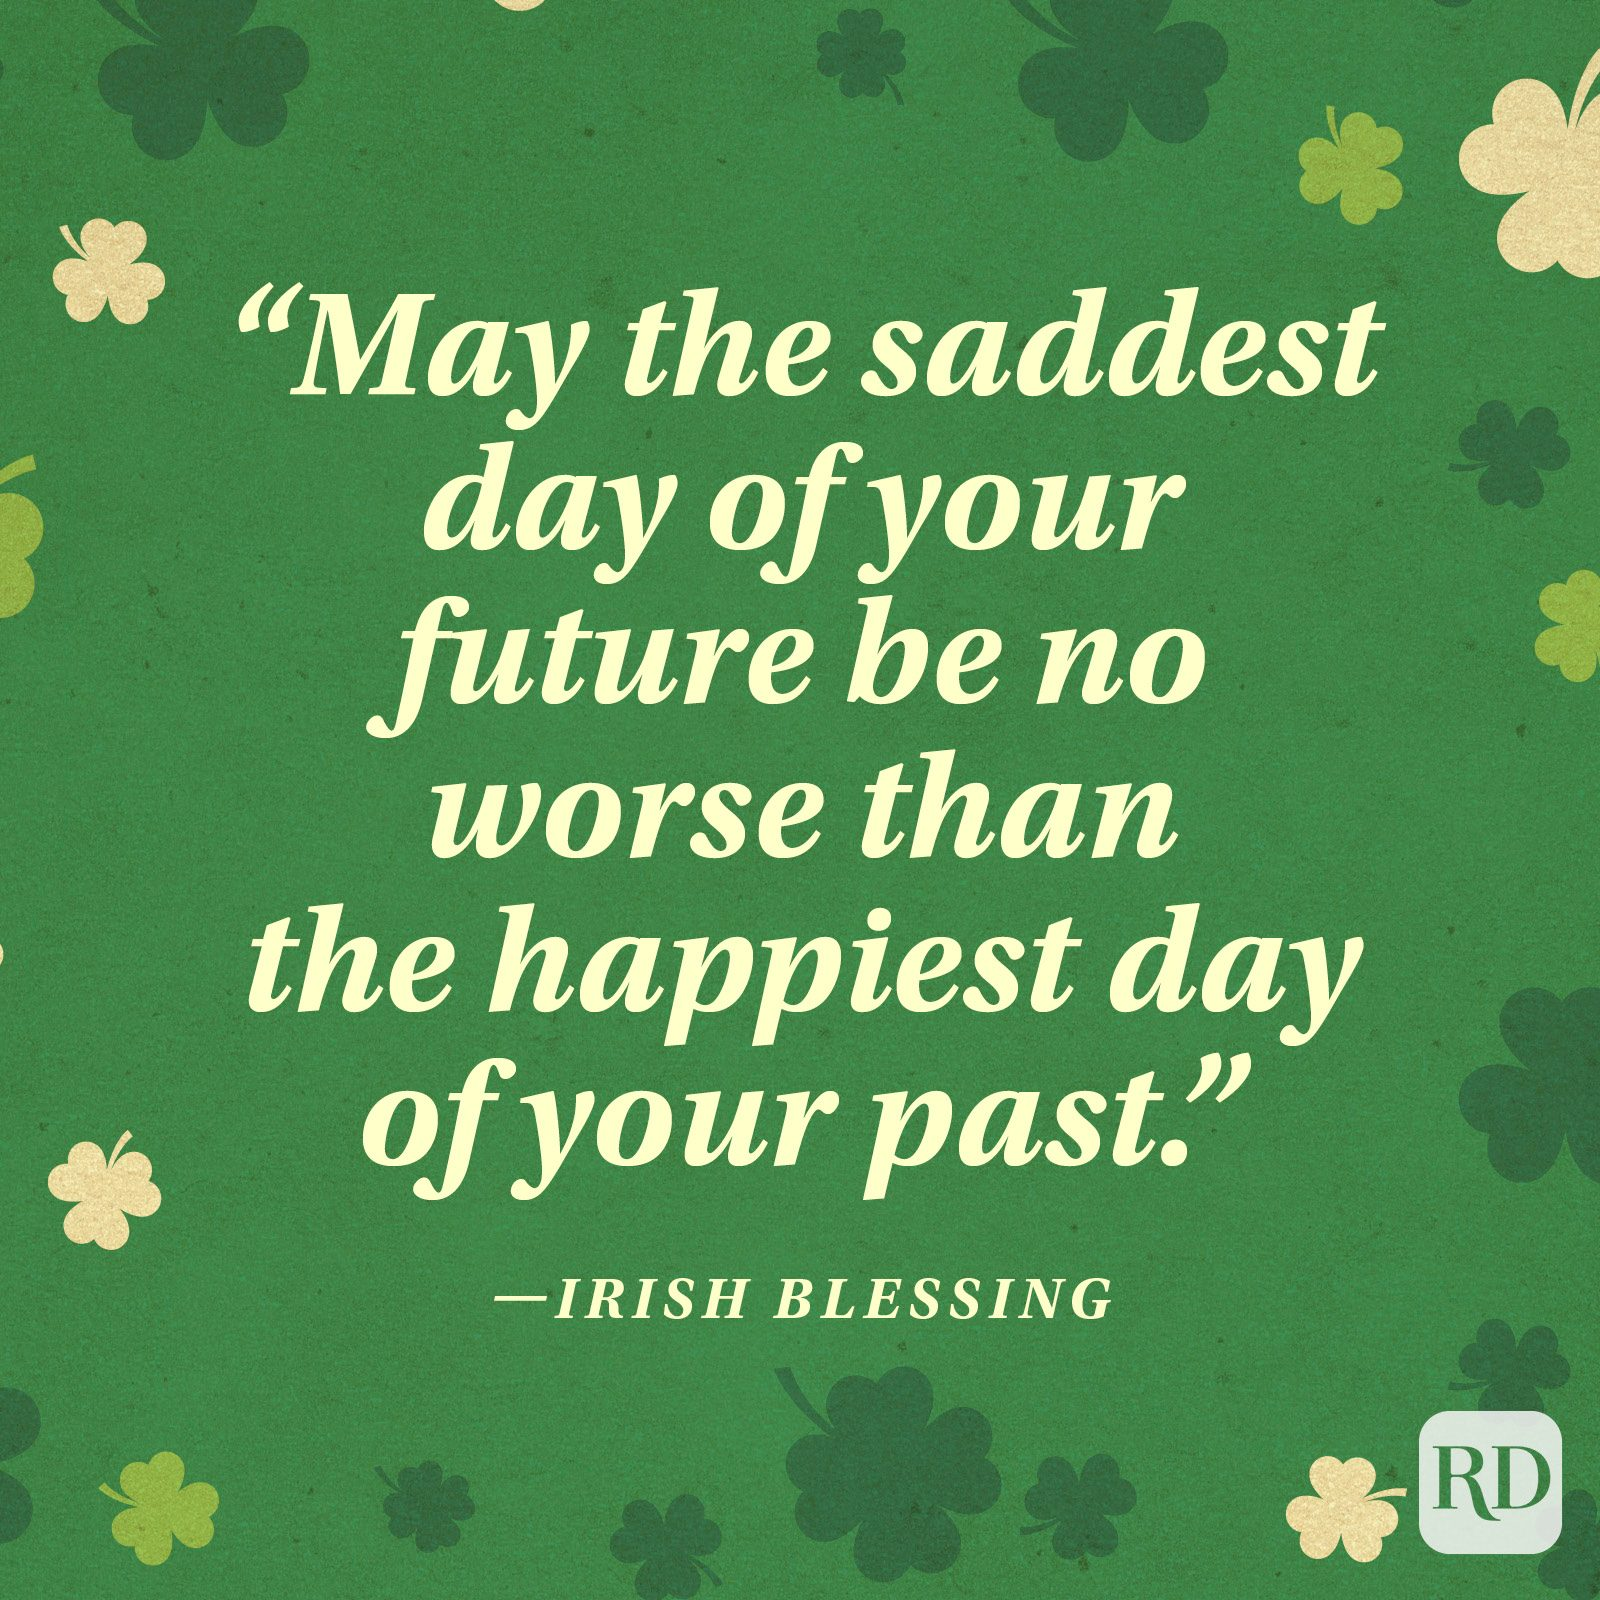 """May the saddest day of your future be no worse than the happiest day of your past."" —Irish blessing"